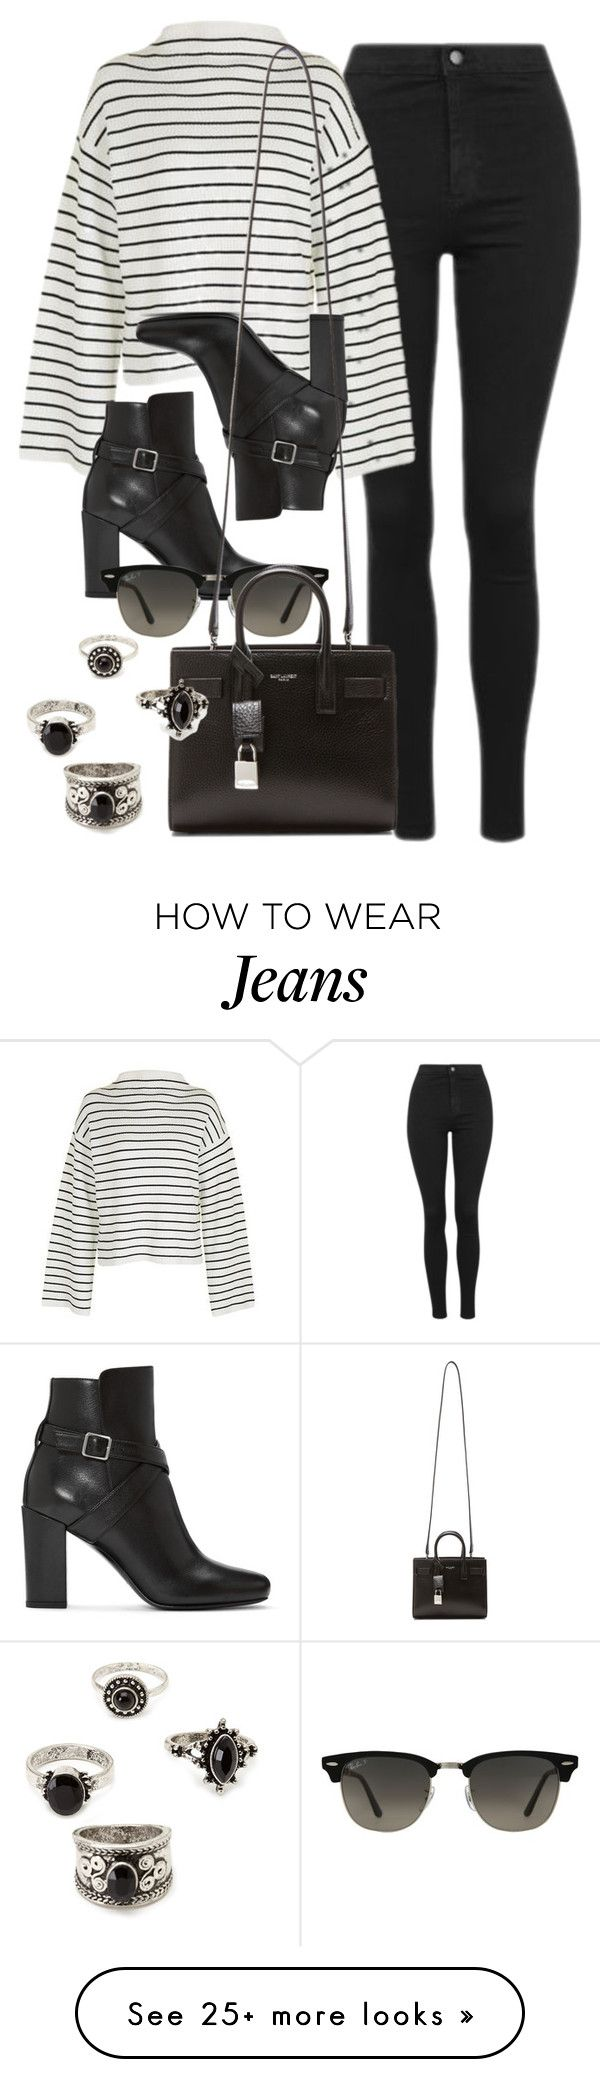 """Style #11590"" by vany-alvarado on Polyvore featuring Topshop, Yves Saint Laurent, Ray-Ban and Forever 21"